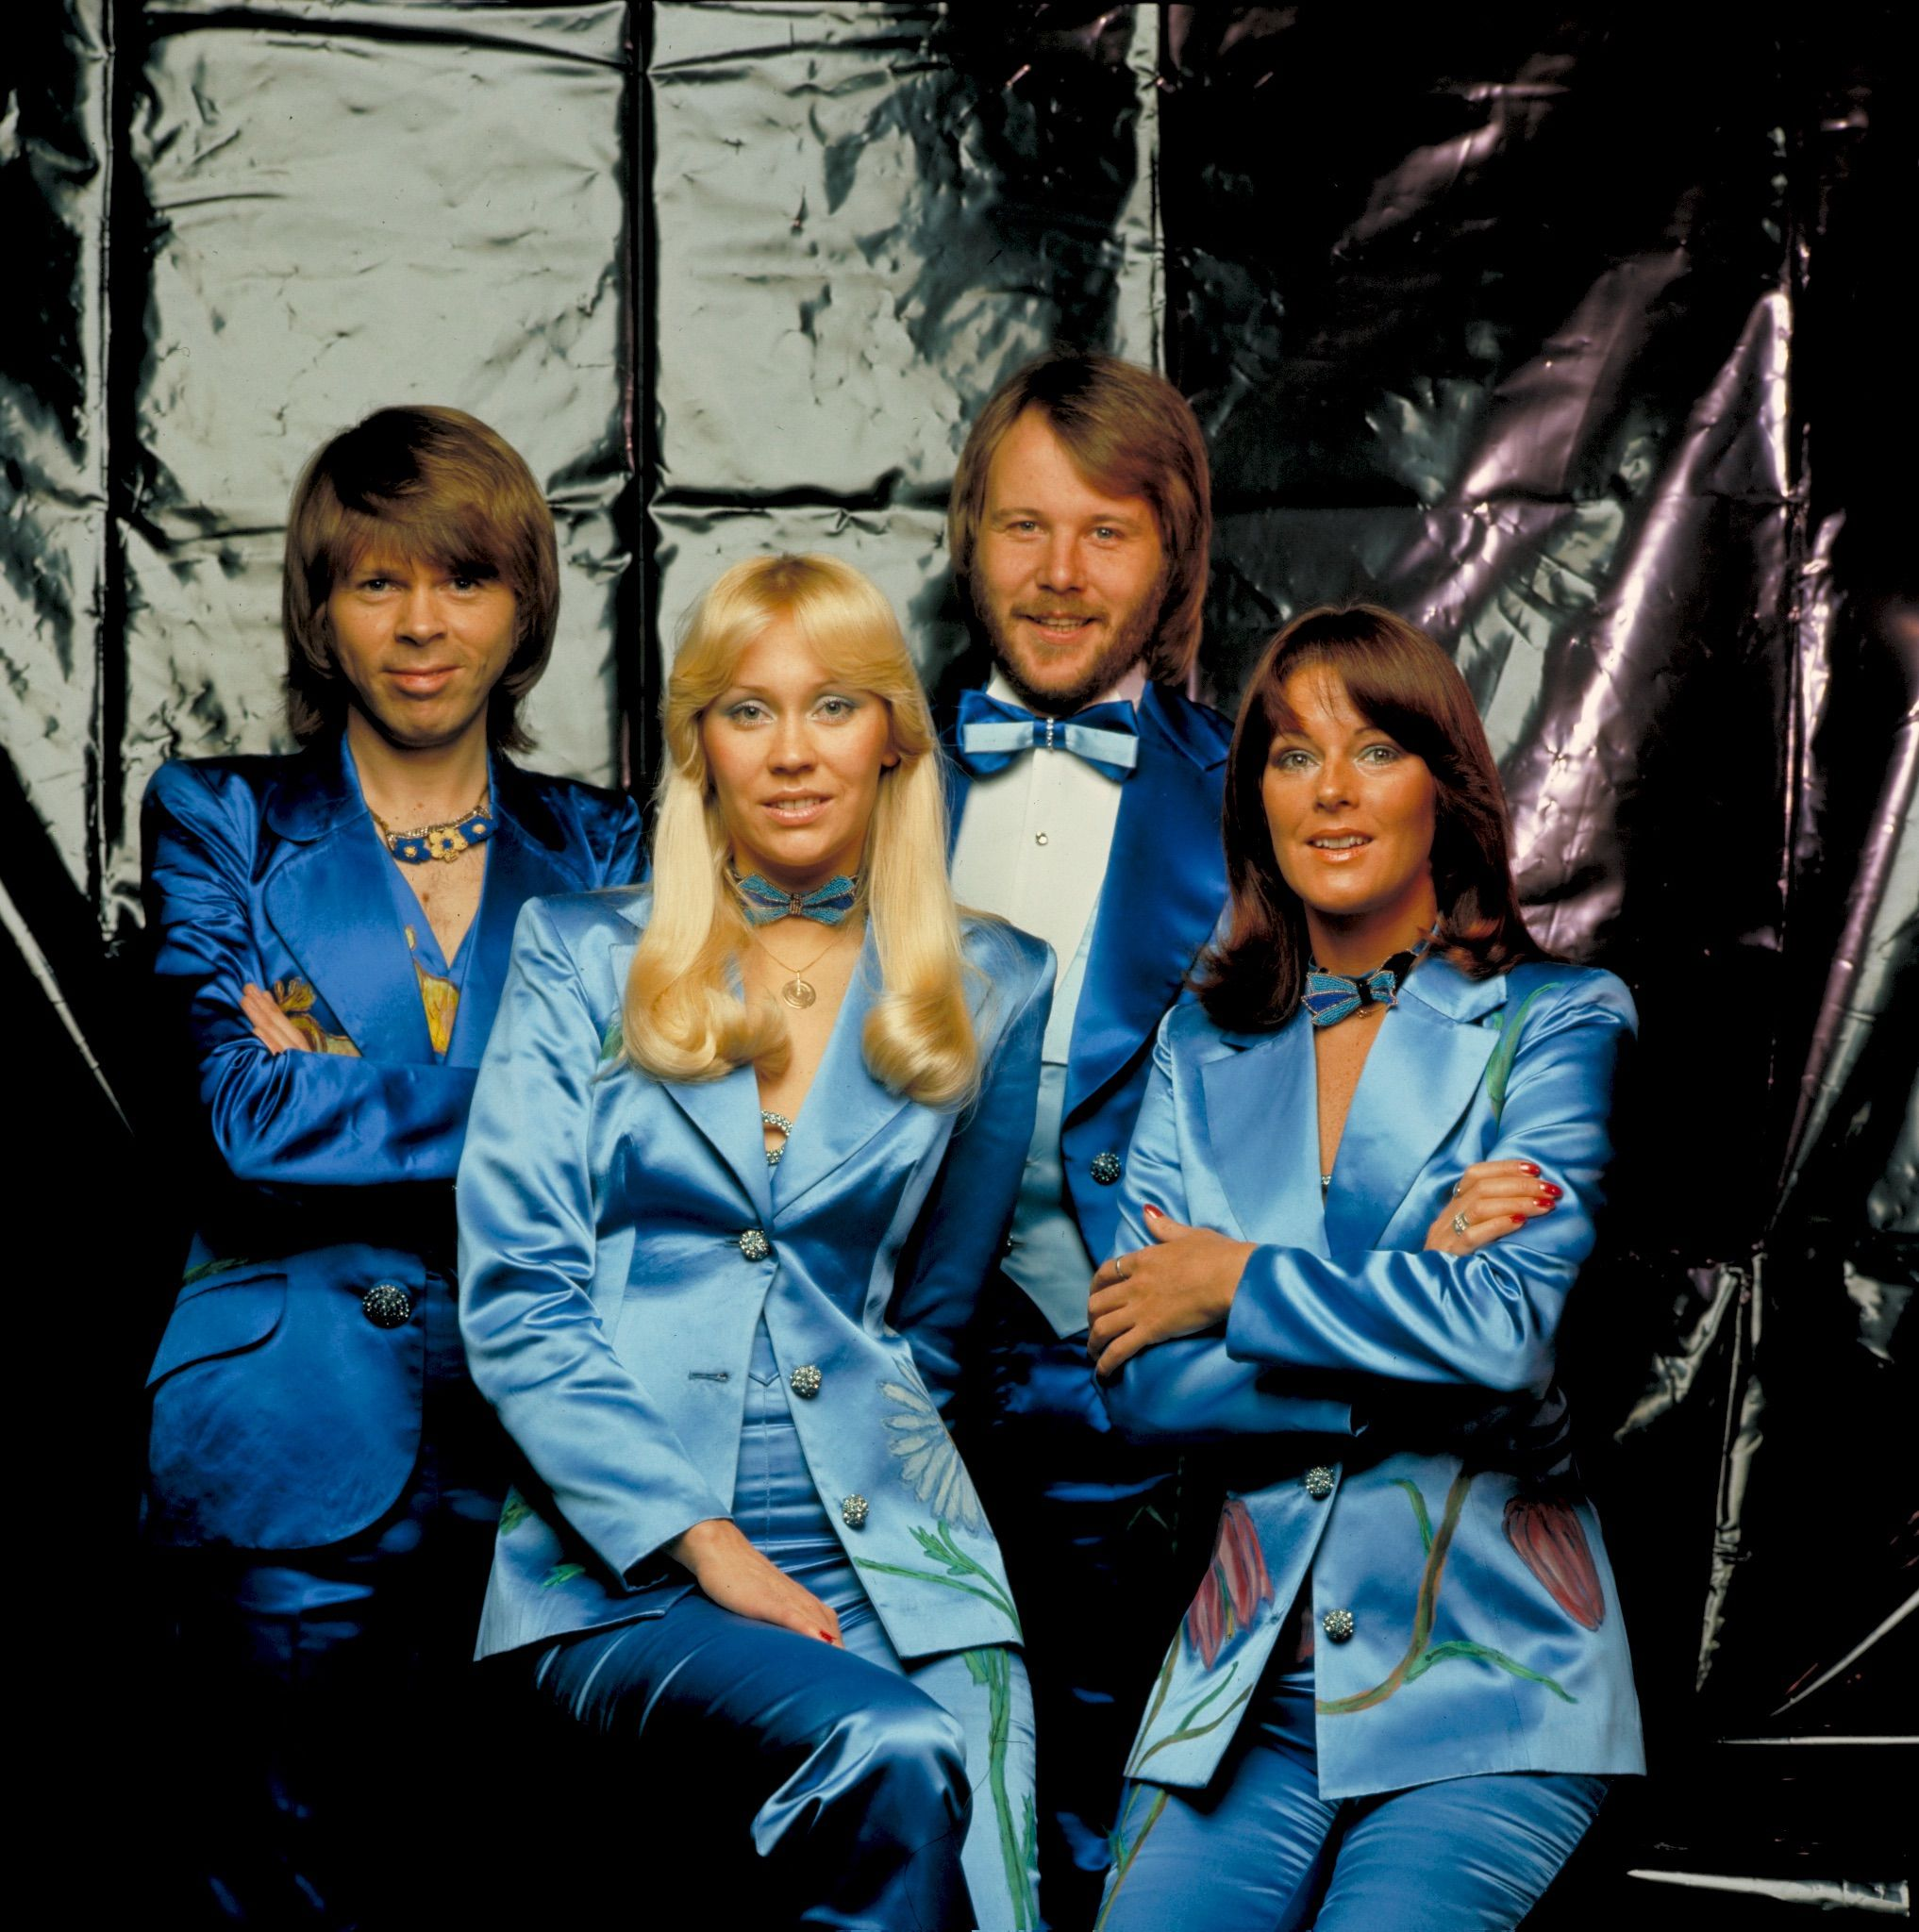 Abba releases new album after 40 years